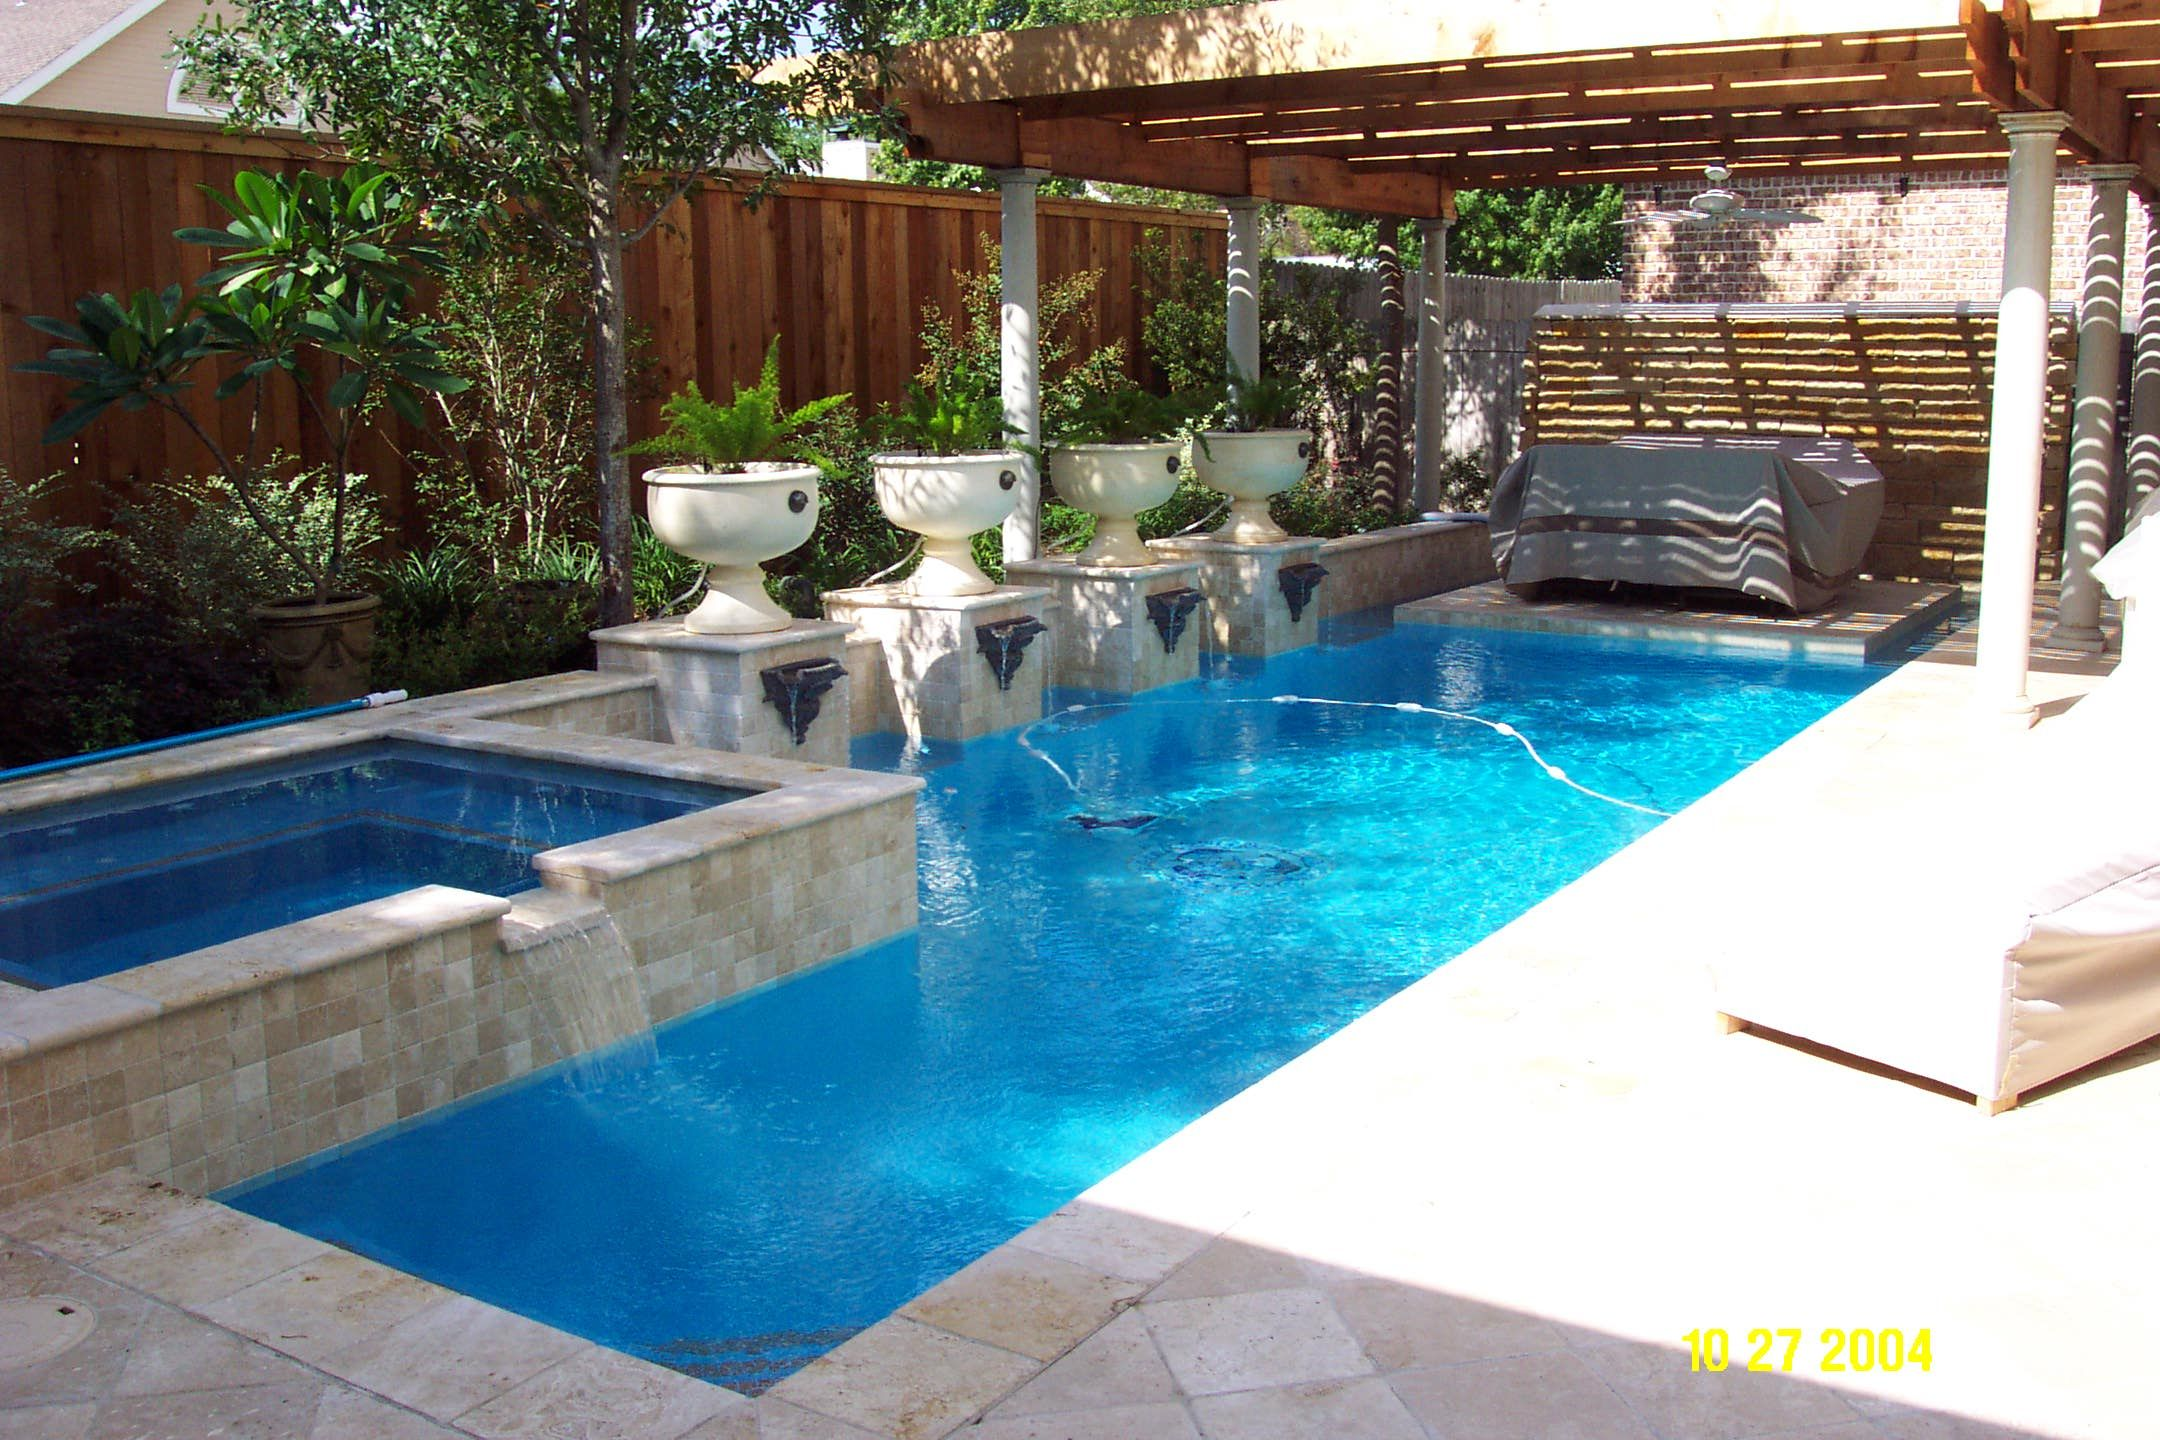 Small backyards with pools google search thereus no place like